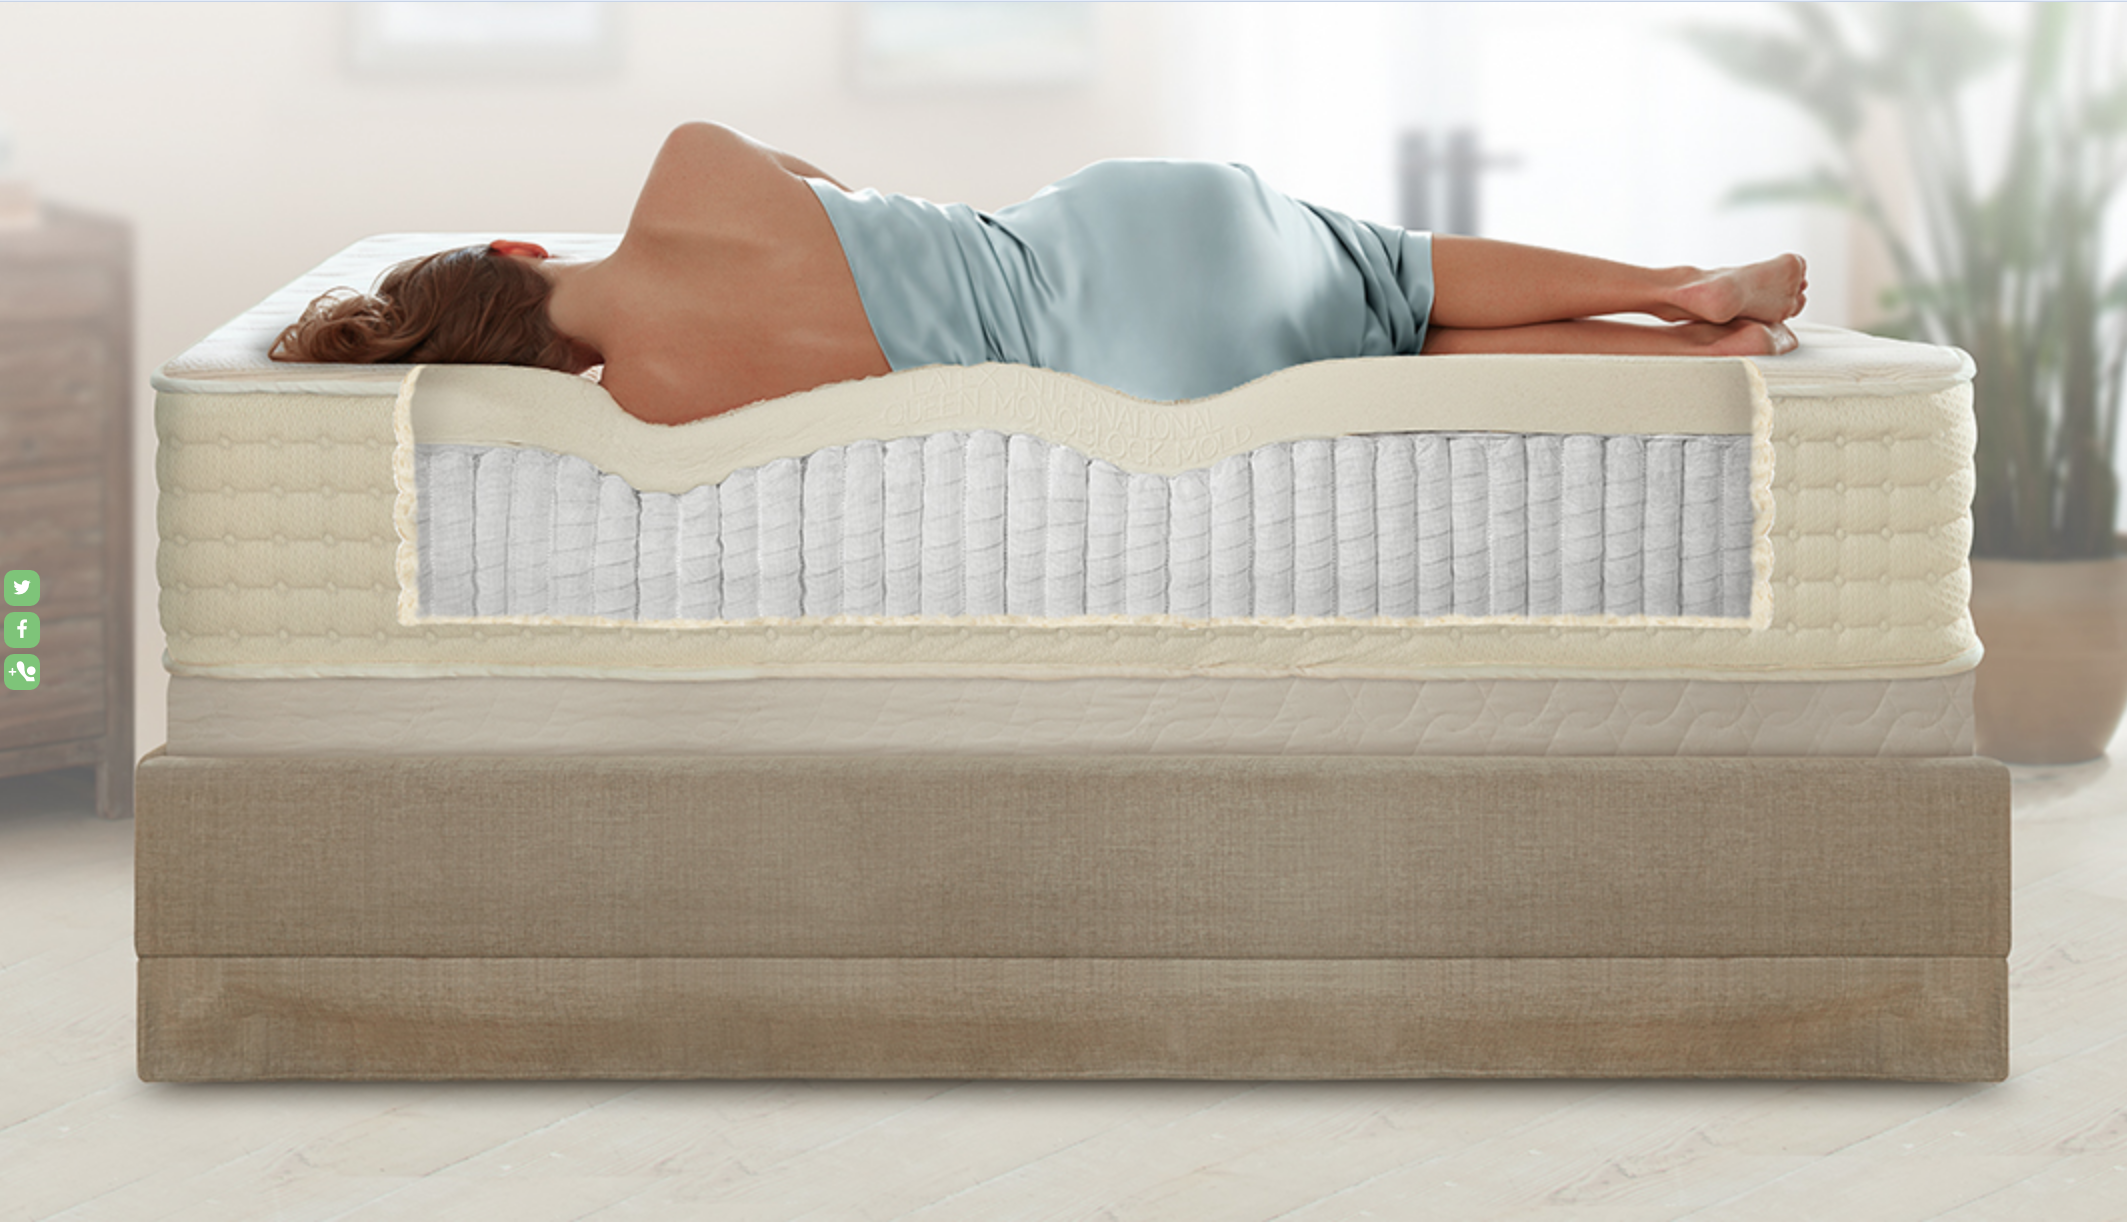 PlushBeds Organic Latex Mattresses - I came across this company, after weeks of research, when my aching back demanded I retire my old mattress. Organic andallergen-free latex? Check! One hundred night trial period? Check! Pick-up and return/exchange guarantee? Check! I quickly decided there was nothing to lose by trying it out. WOW! Most comfortable bed ever! Over the years I have added their queen,a sofa sleeper and two twins. Good luck getting your guests to leave;)Get your PlushBed here!